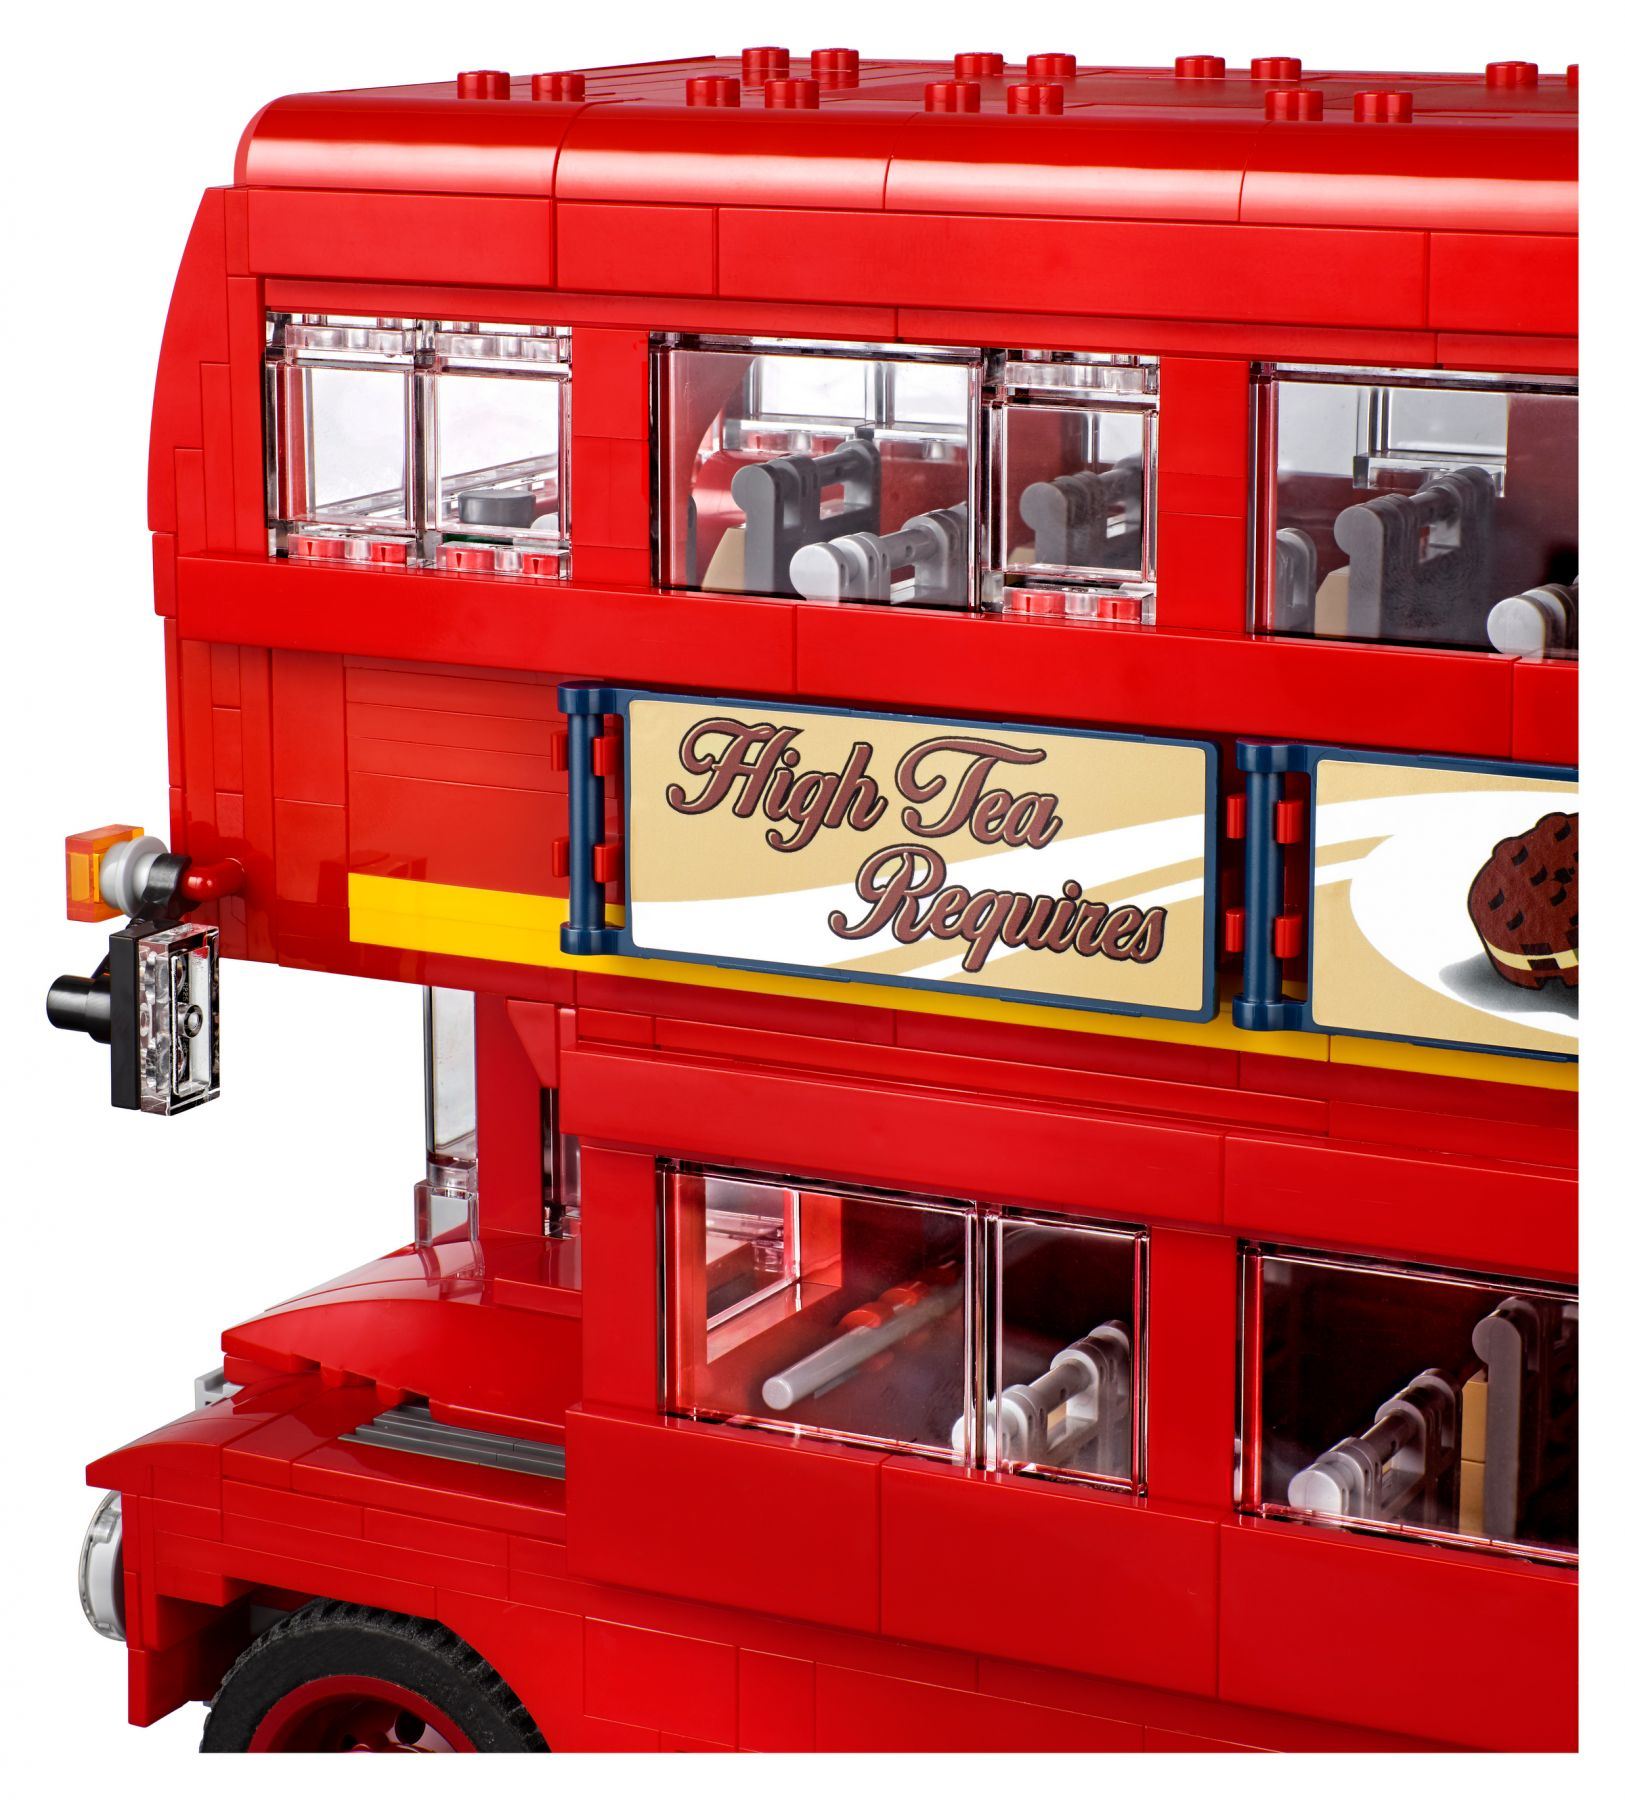 LEGO Advanced Models 10258 Doppeldecker Bus LEGO_10258_alt8.jpg